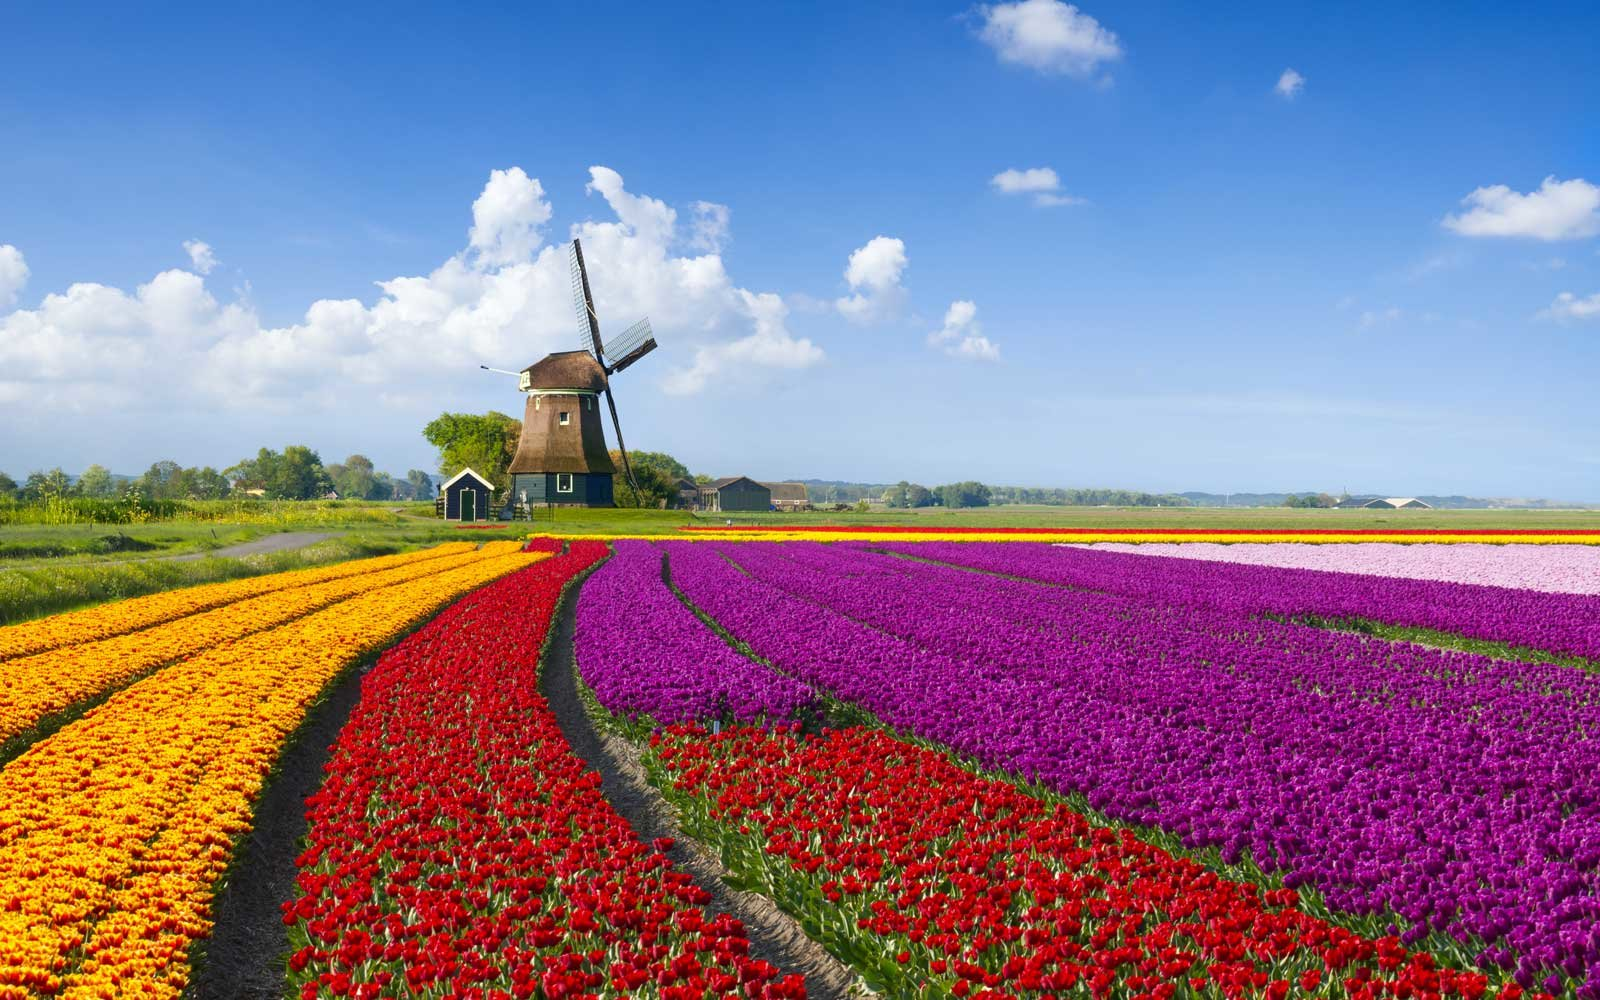 Tulips and Windmill in the Netherlands